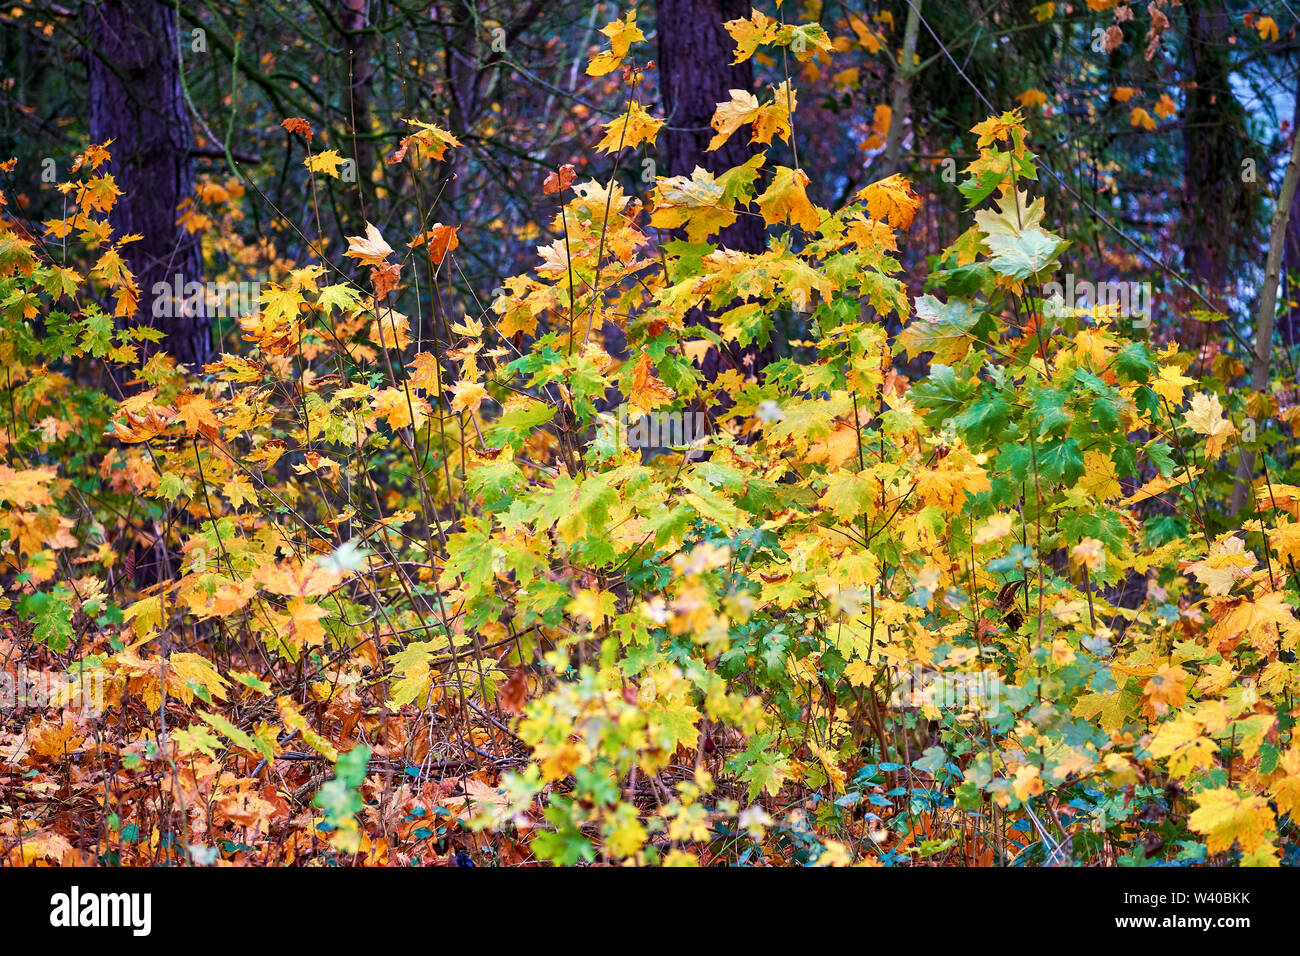 Autumn nature scene. Autumn landscape with leaves. - Stock Image